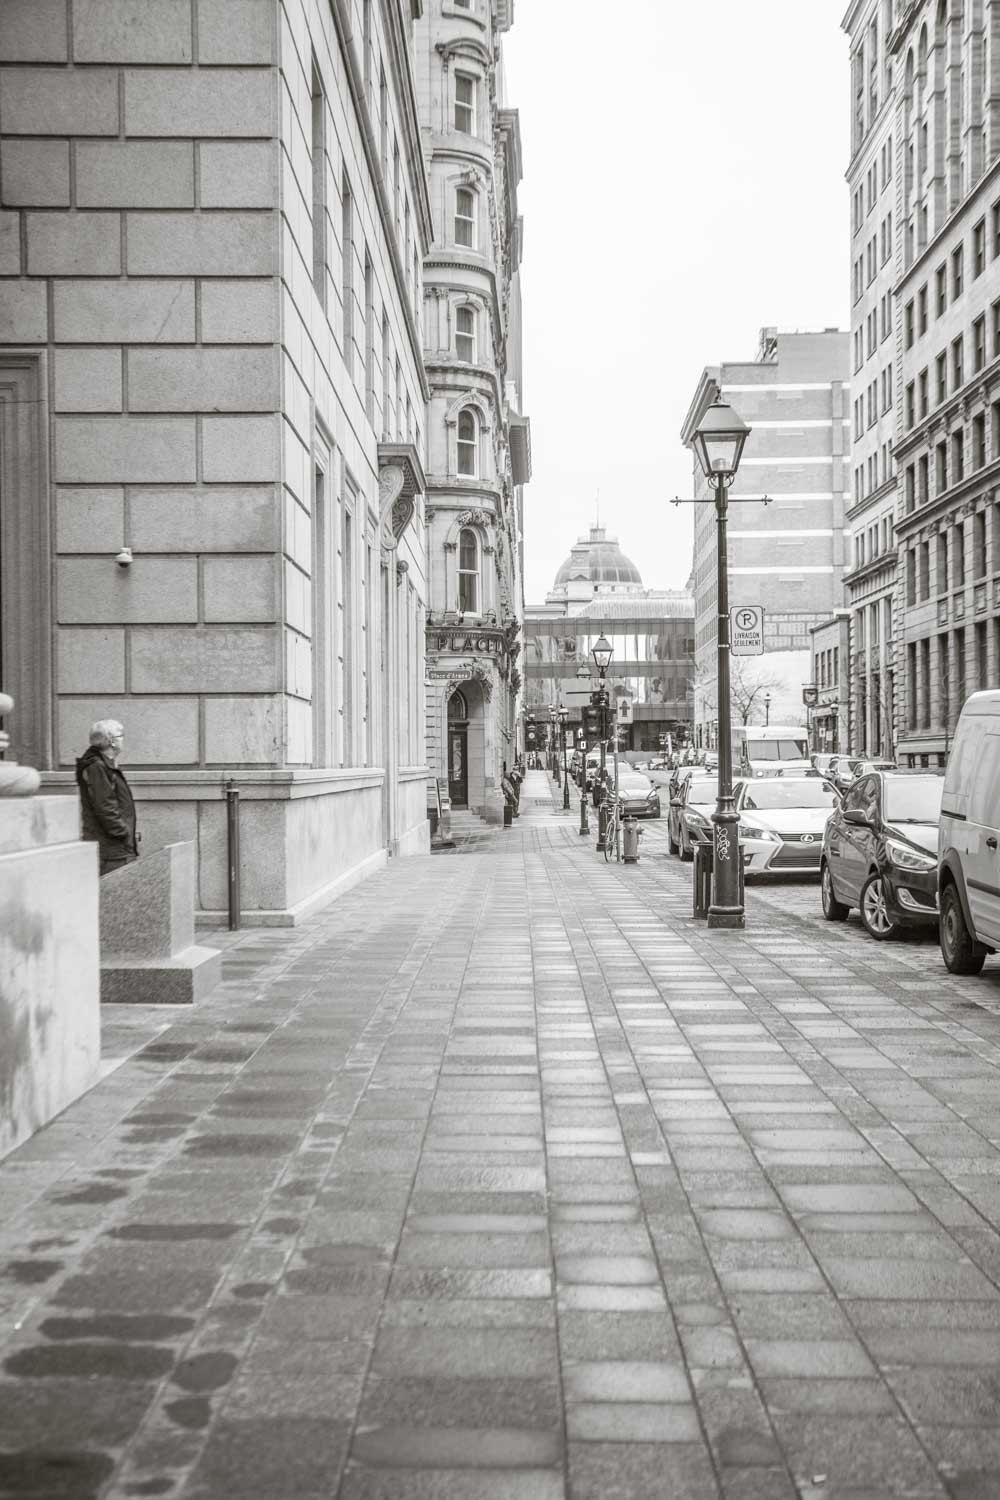 How to Use Low Graphic Style as a Compositional Tool - b/w street scene